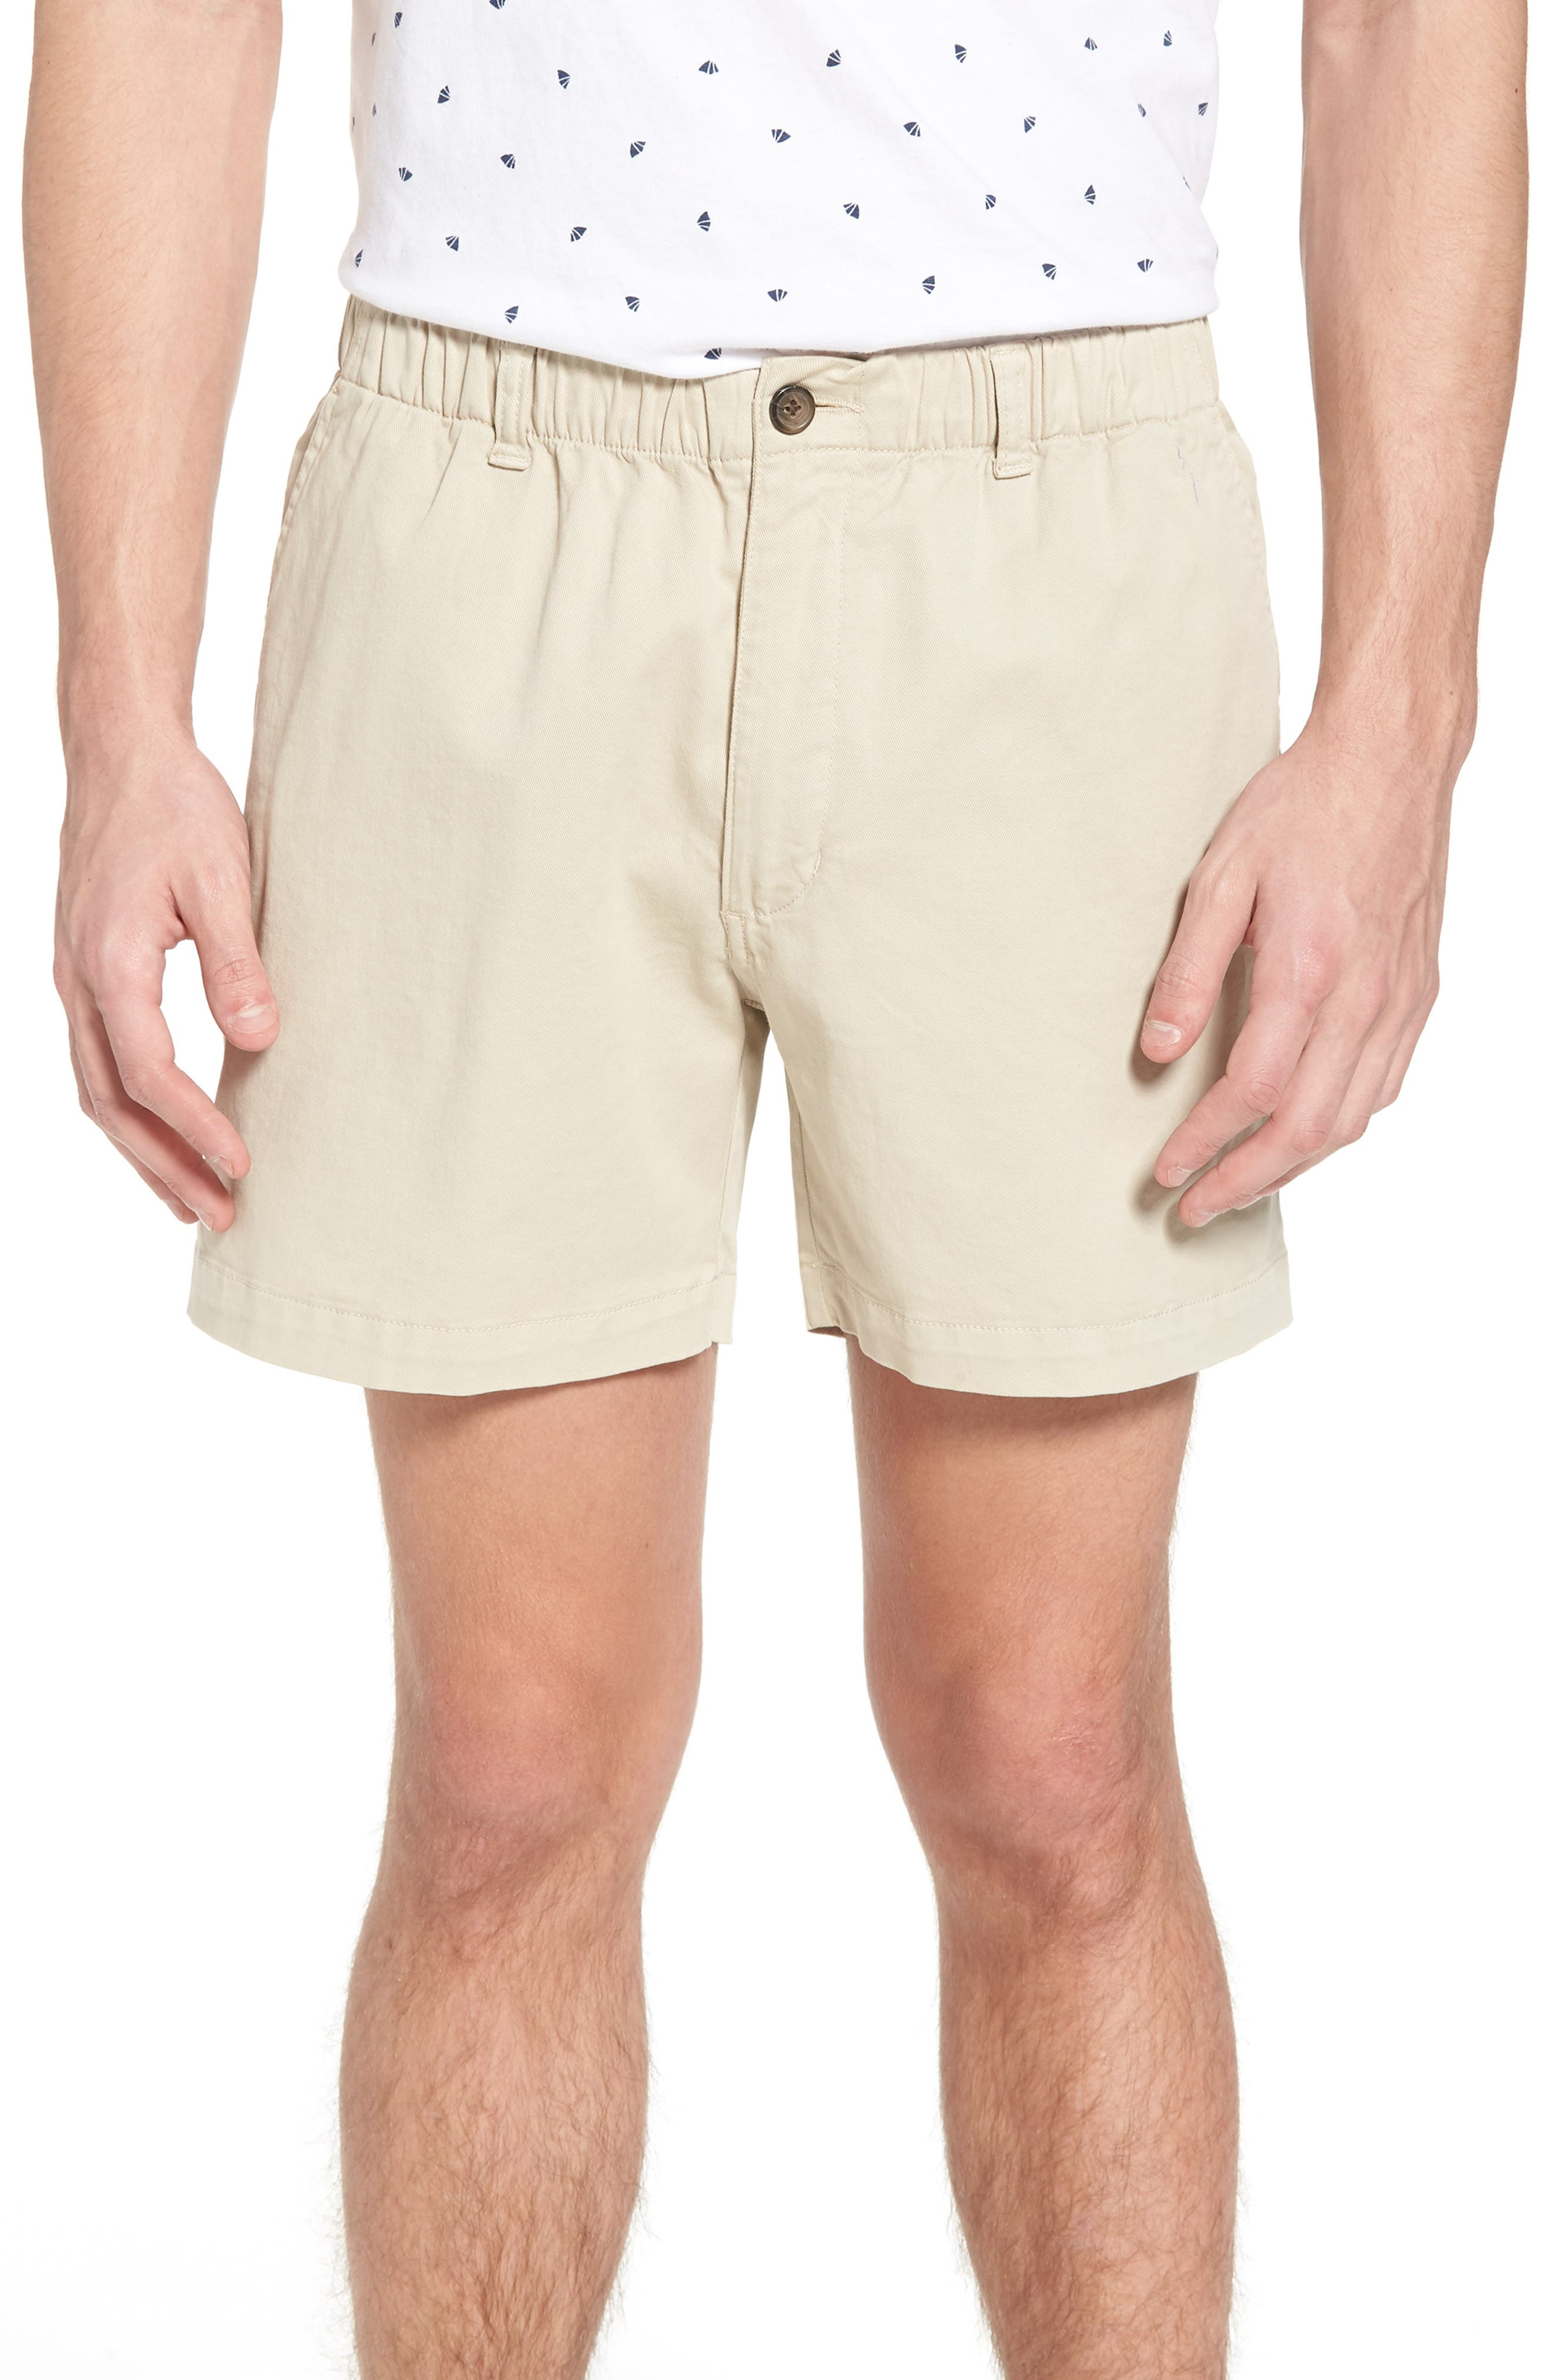 Snappers Elastic Waist 5.5 Inch Stretch Shorts,                             Main thumbnail 1, color,                             STONE